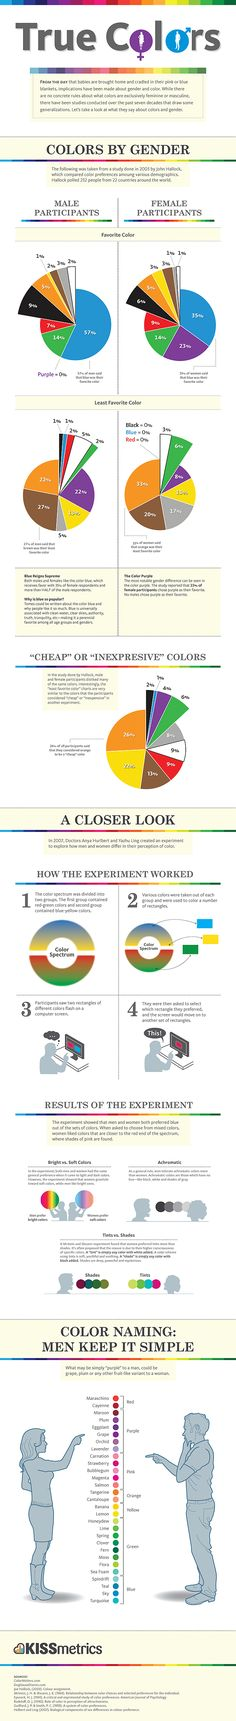 Trying to decide on colors for your business branding? Here's an interesting collection of research results on how women and men react to colors. Men vs. Women: Our Favorite Colors Based On Gender